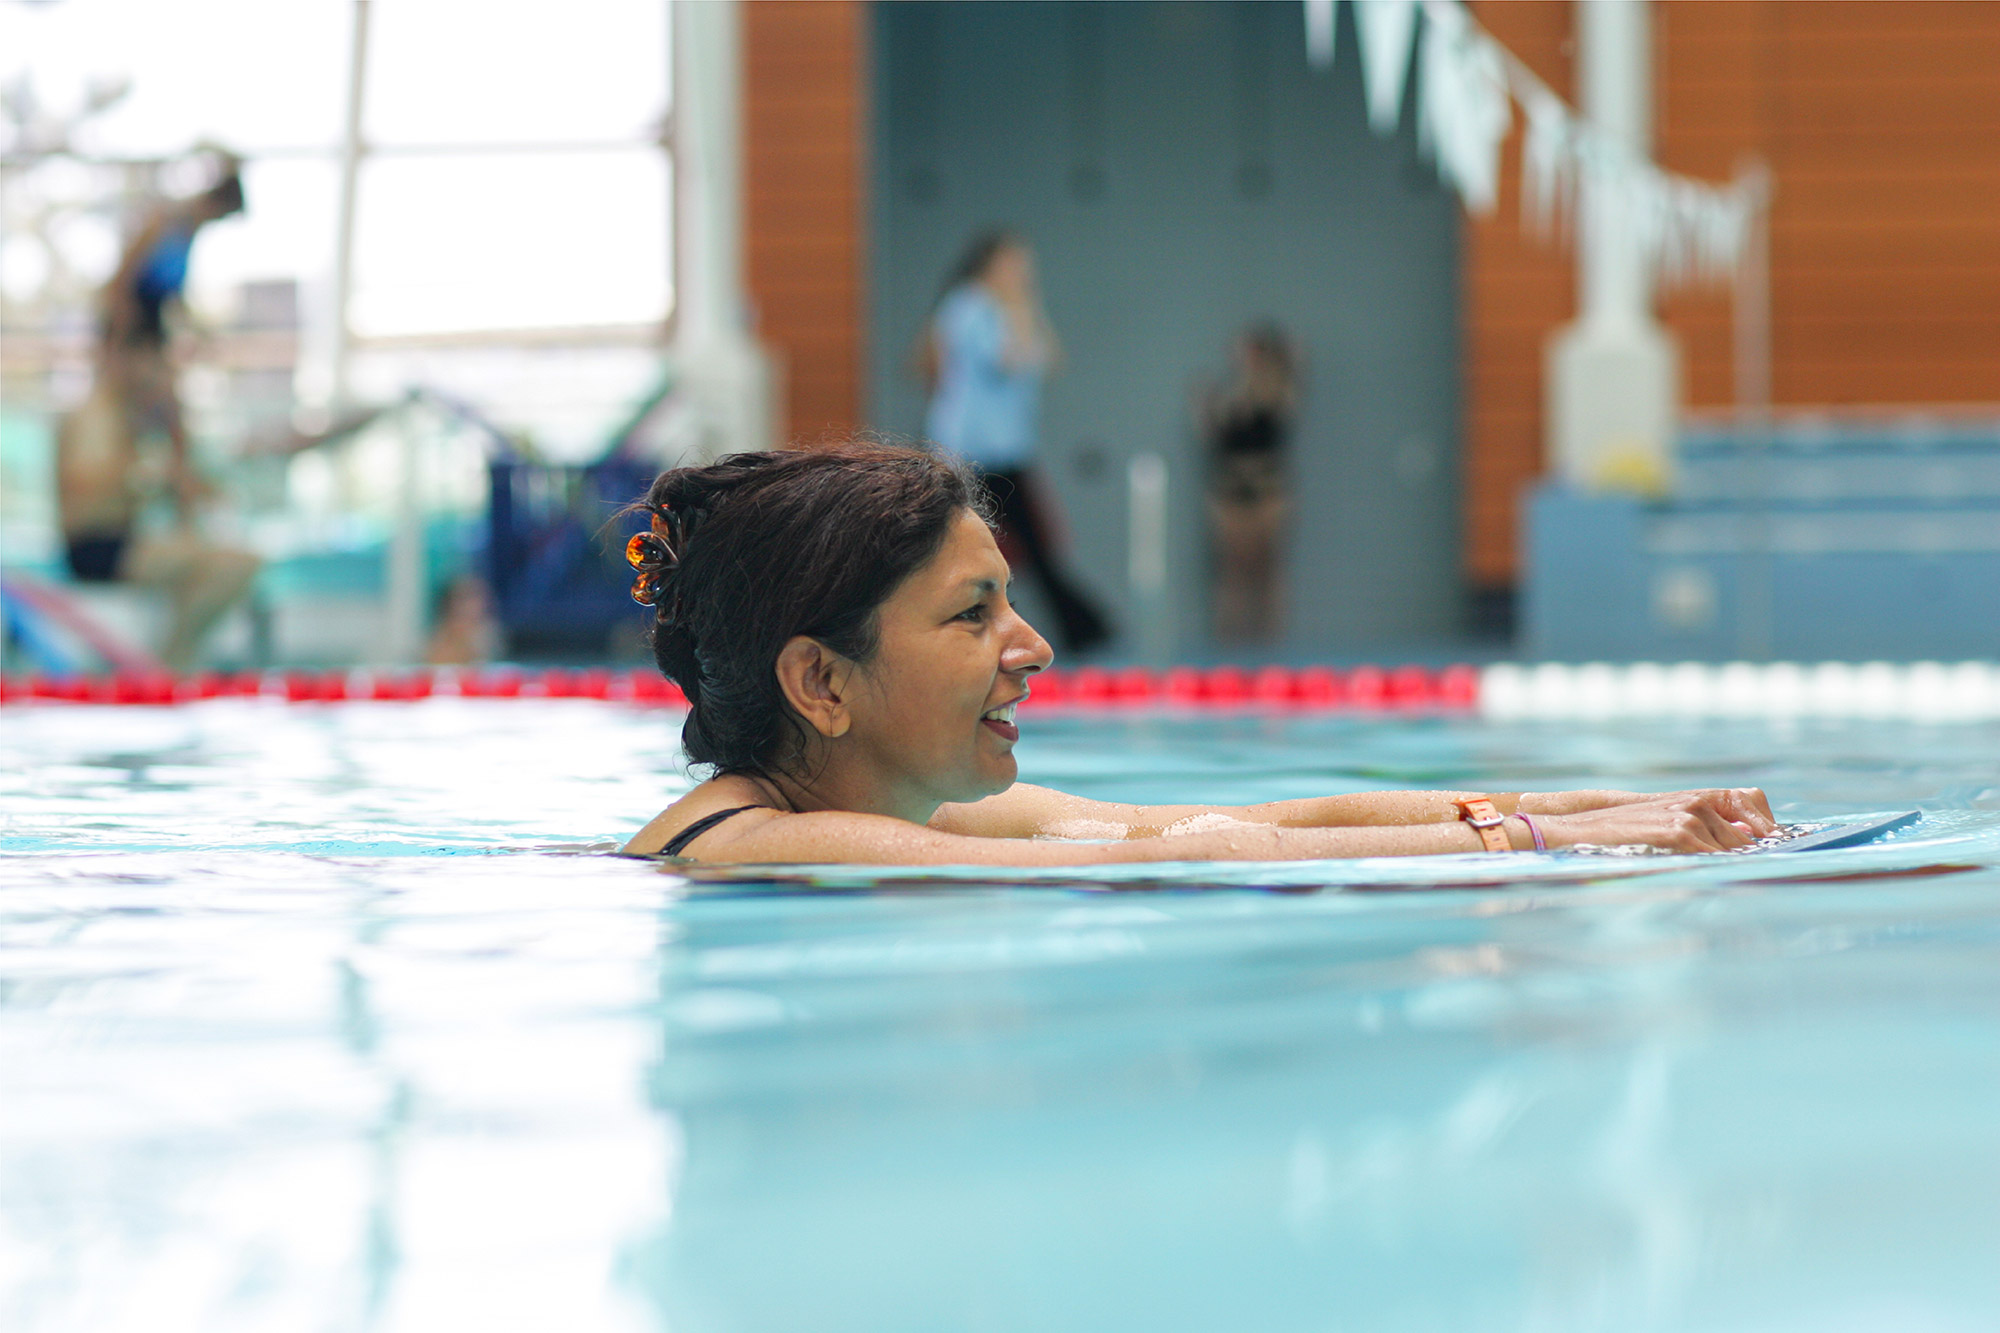 Active Luton provides swimming opportunities for its BAME communities